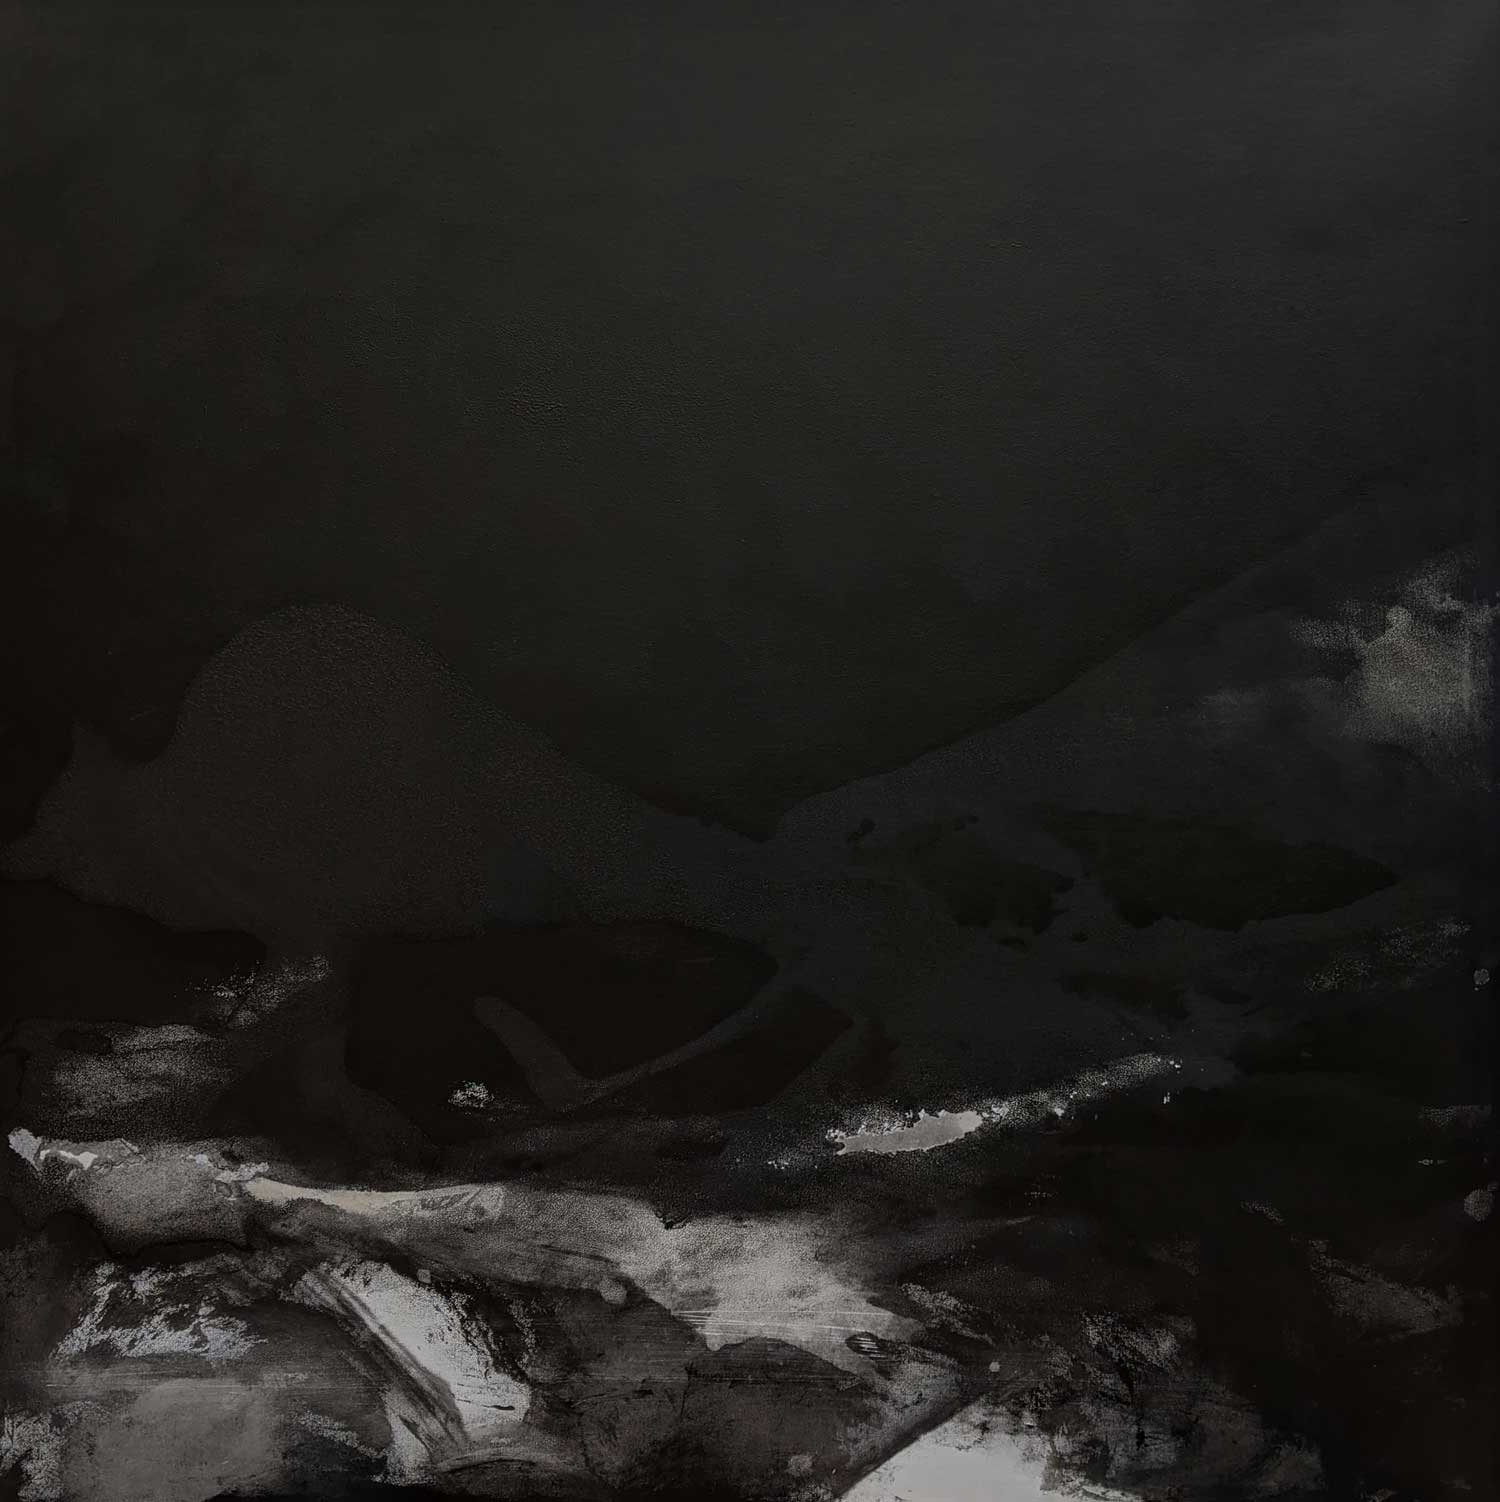 Emilie HeurteventThe Abyss #7, 2020Acrylic and ink on canvas122 cm by 122 cm$2,500